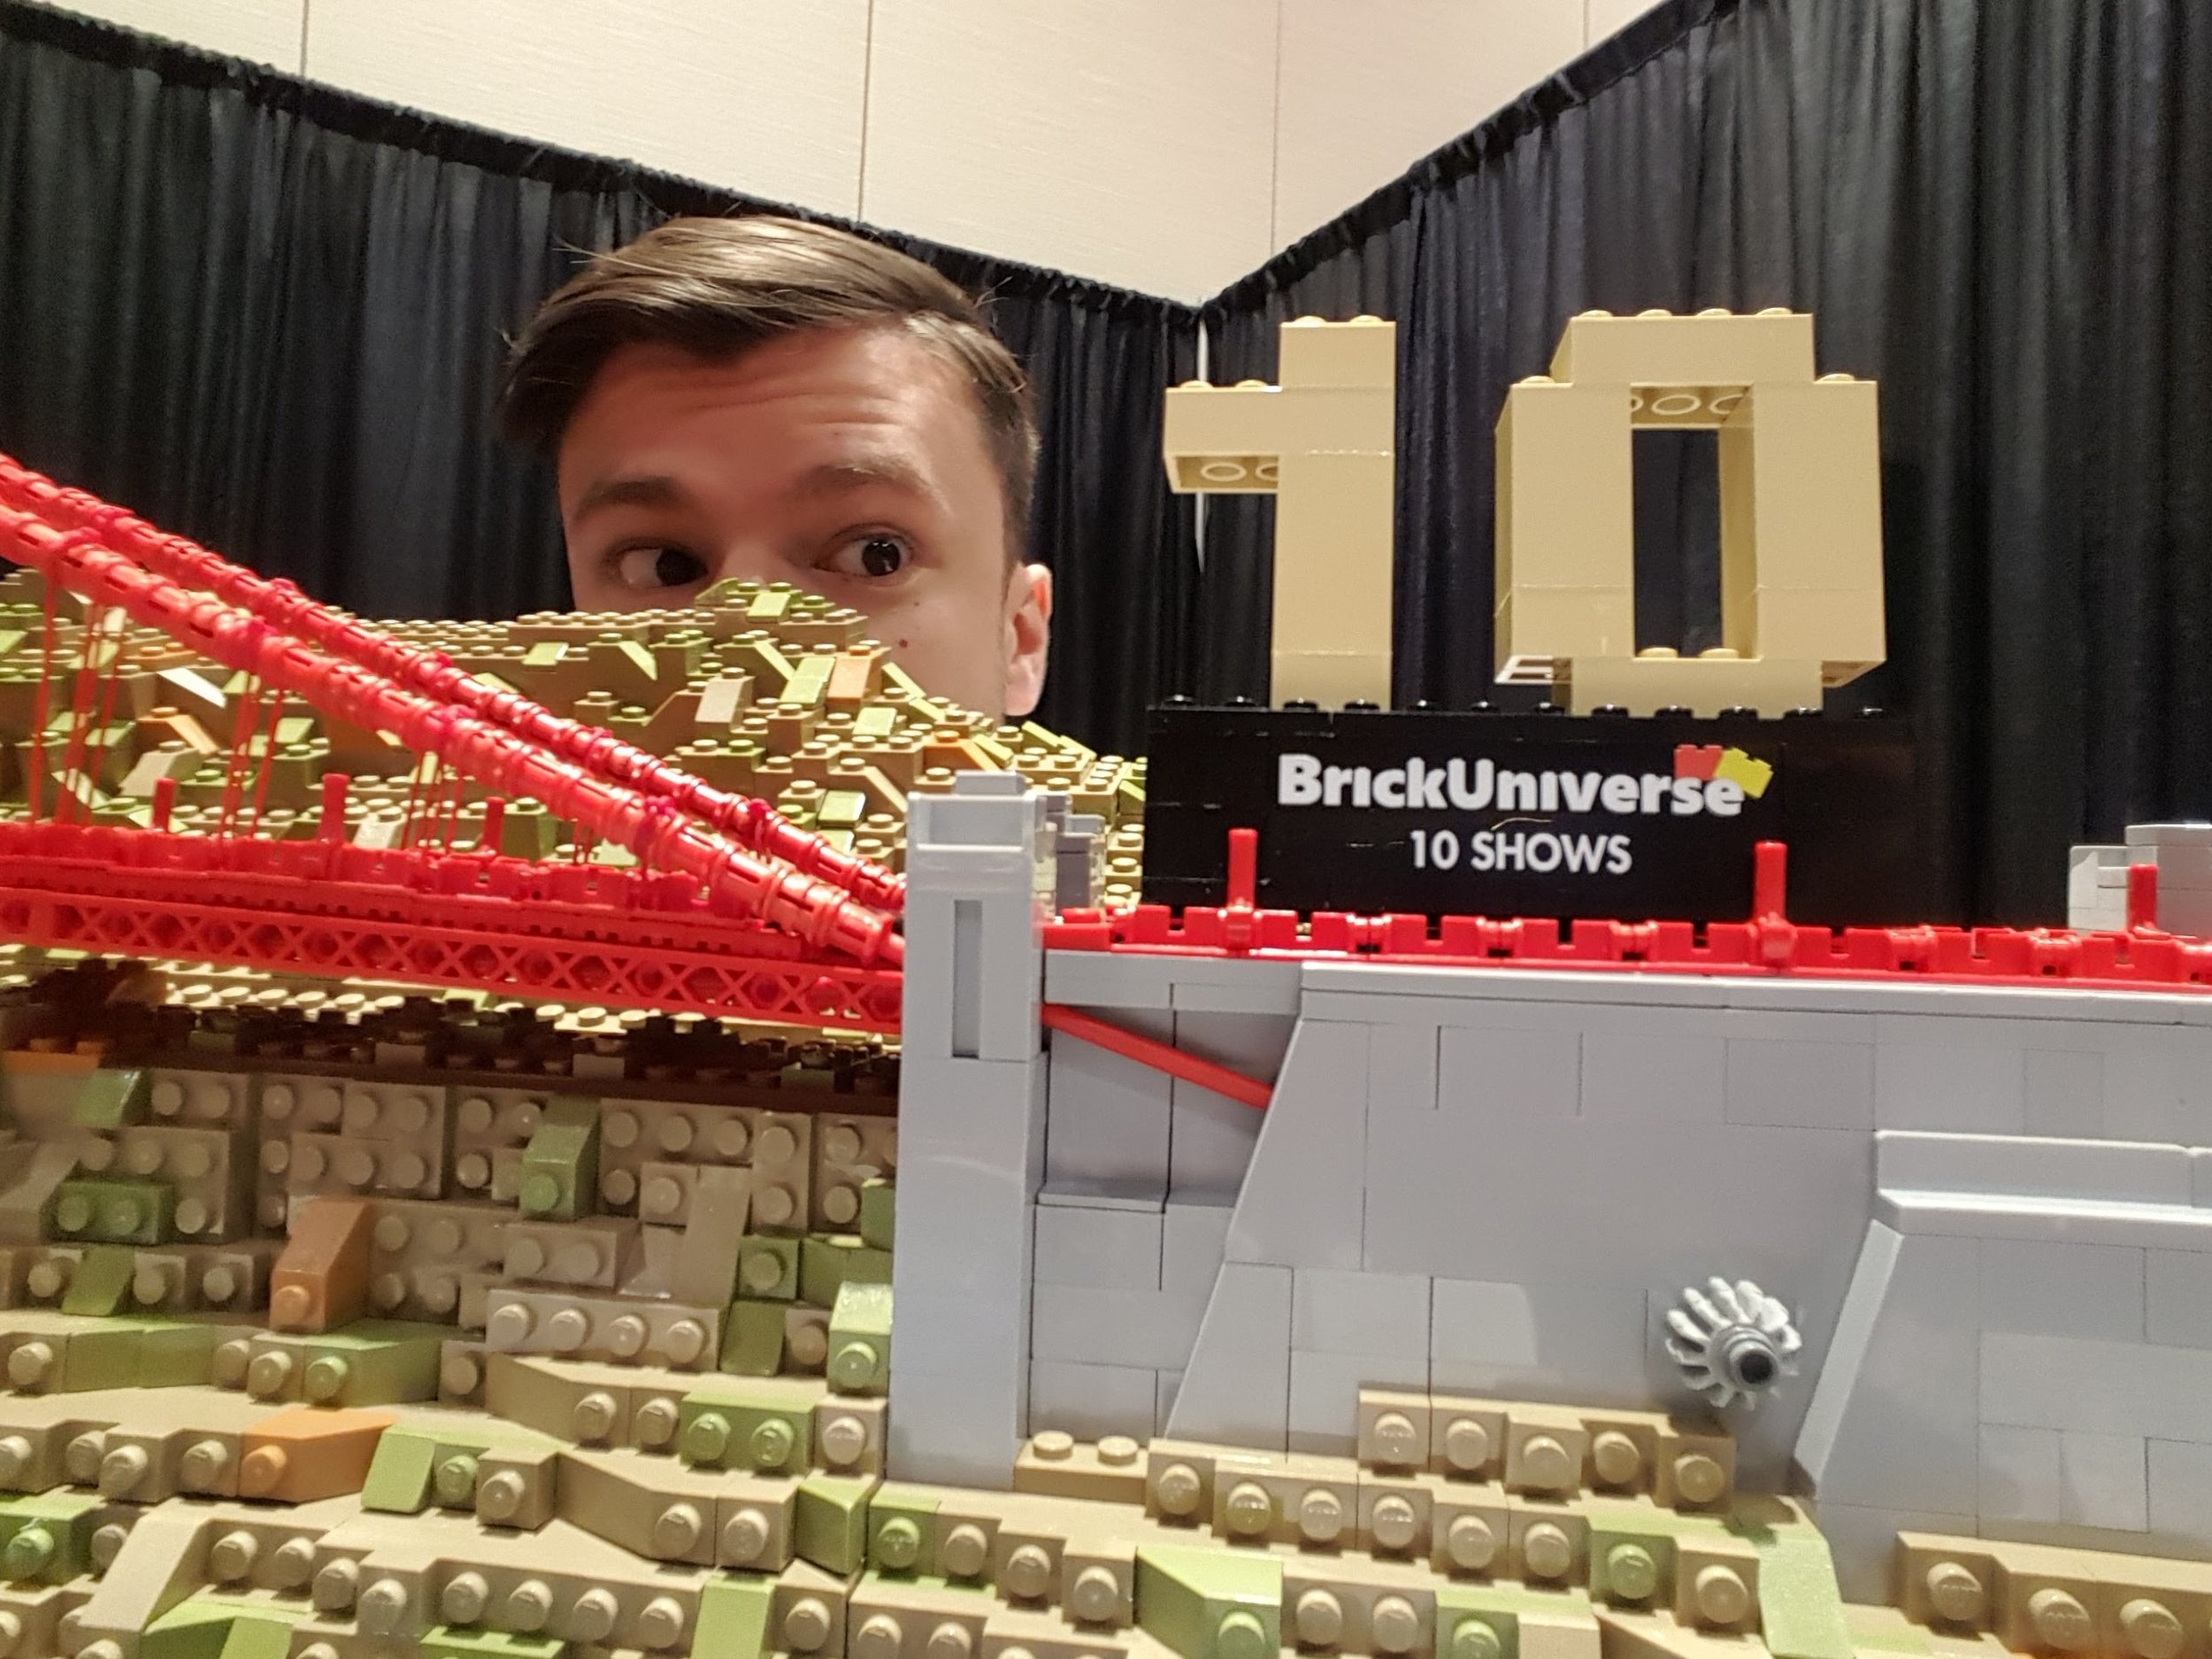 BrickUniverse - Madison